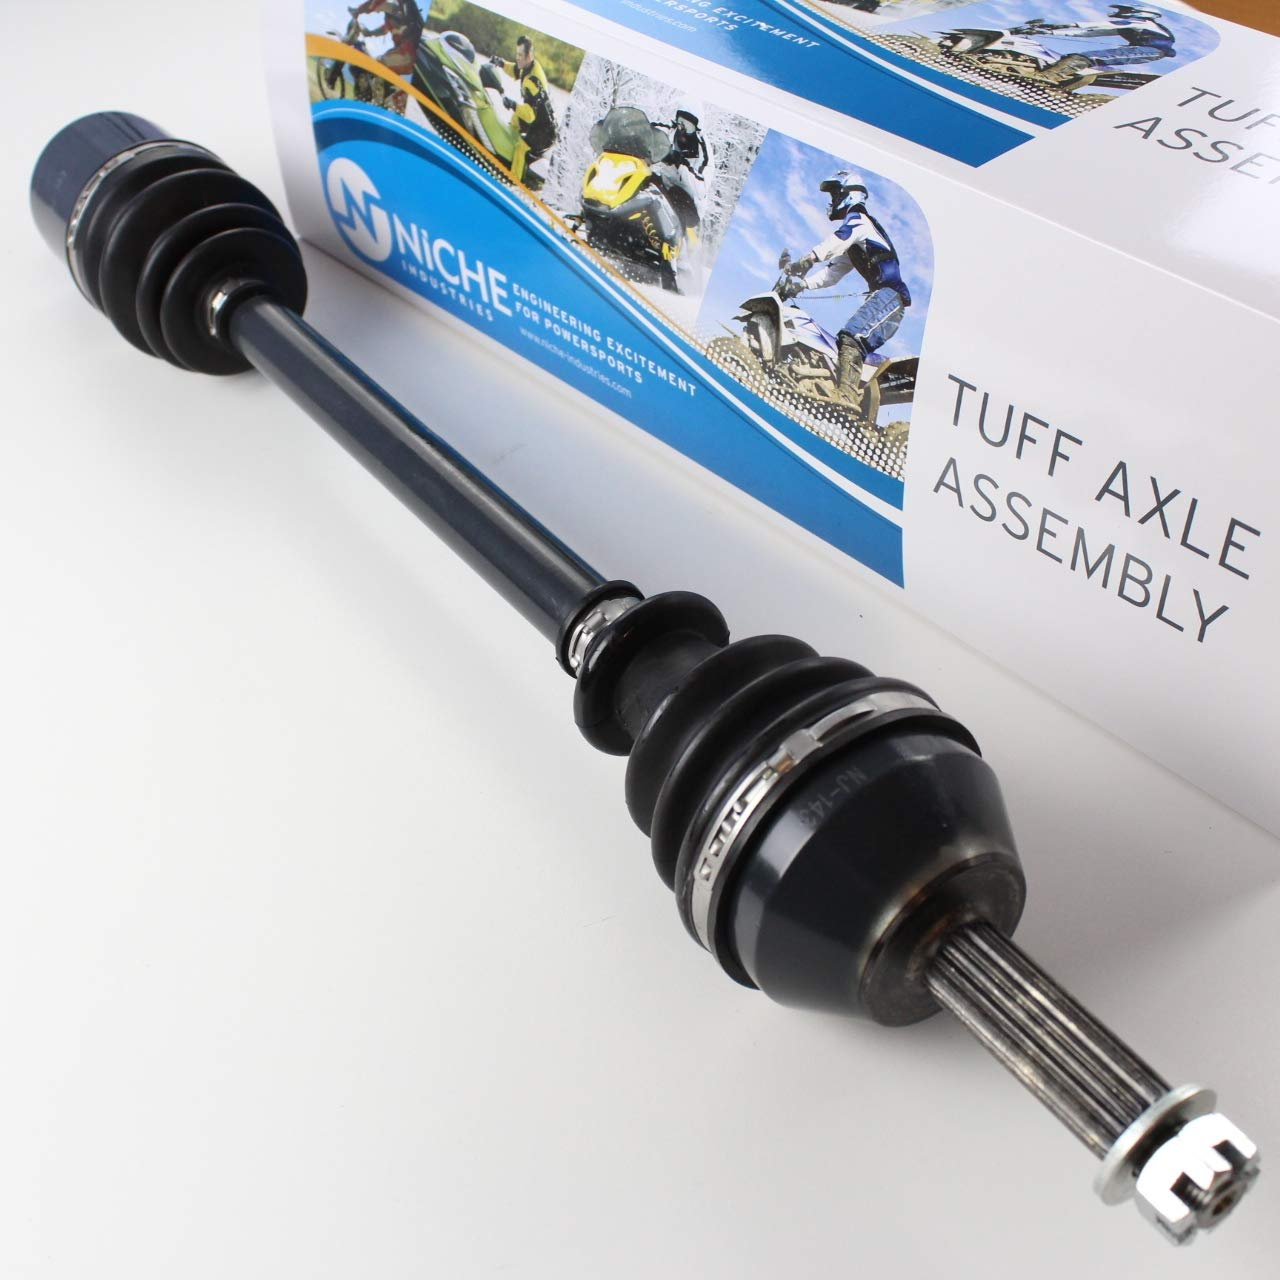 NICHE High Strength Front and Rear Left Right Drive Shaft Axle Kit Combo For 2005-2007 Polaris Ranger 500 1332285